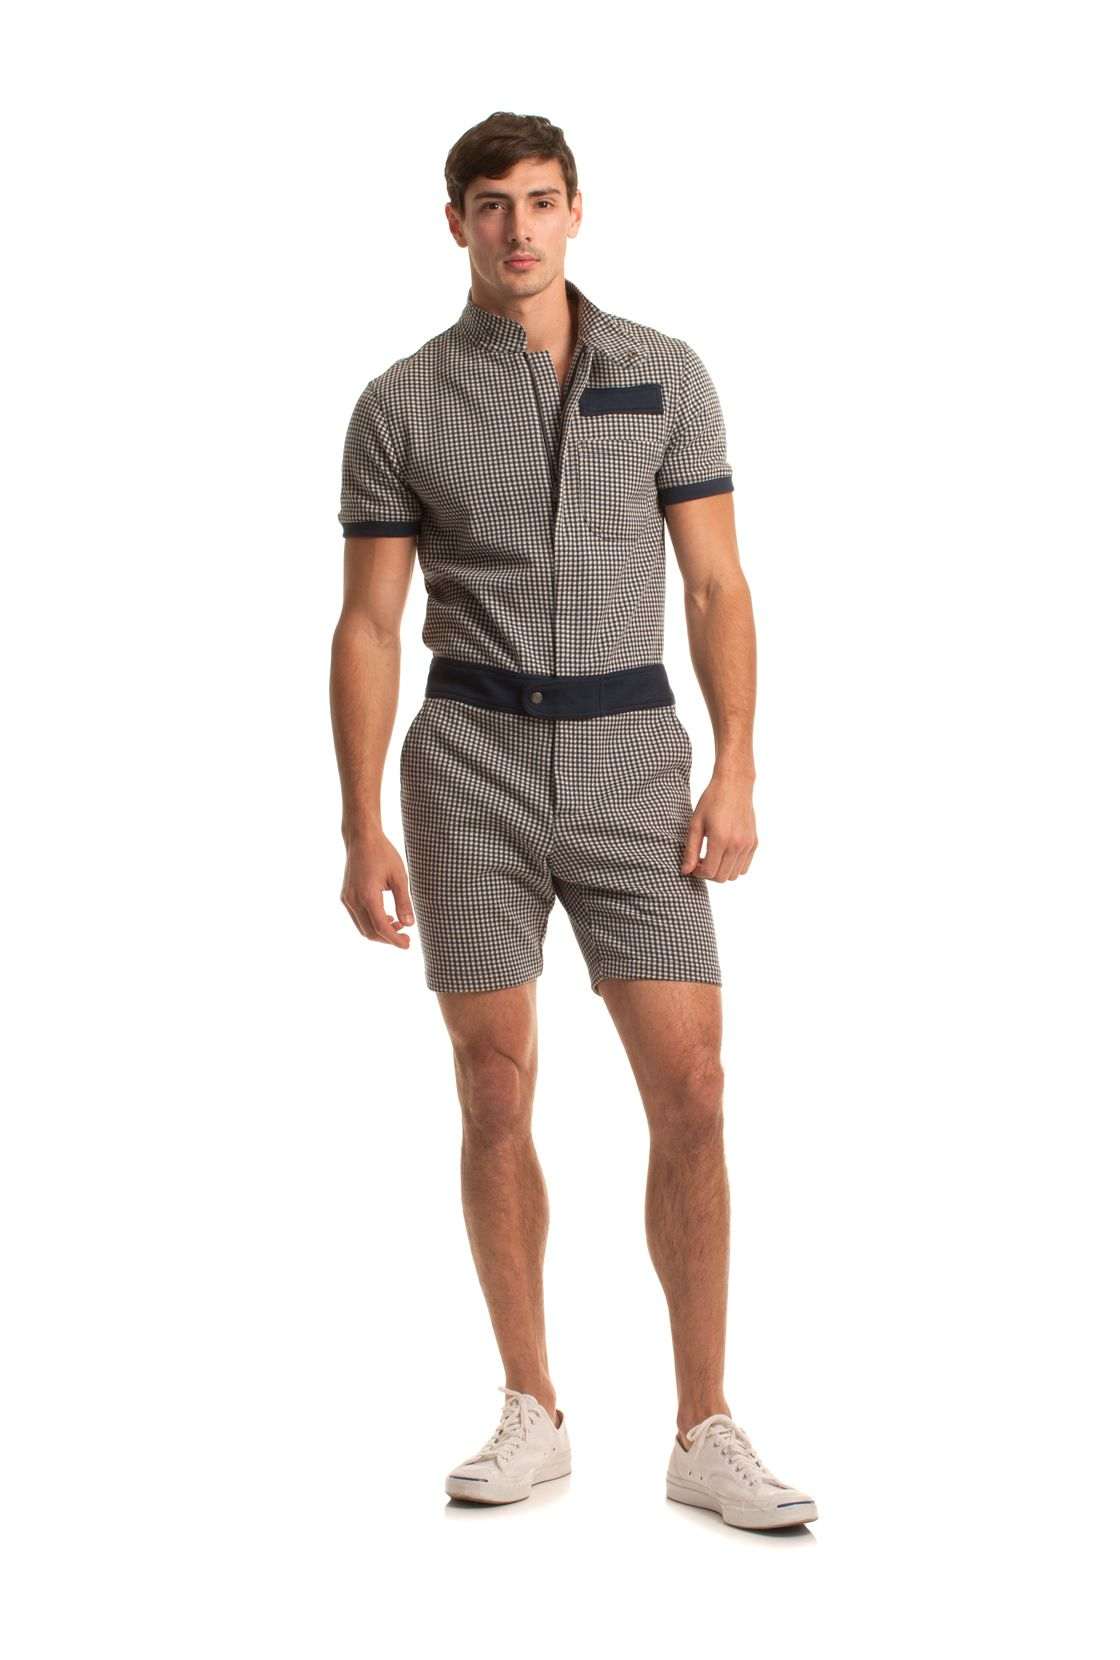 f0af77d14f1 NEWTON SHORT JUMPSUIT. NEWTON SHORT JUMPSUIT Big Men Fashion